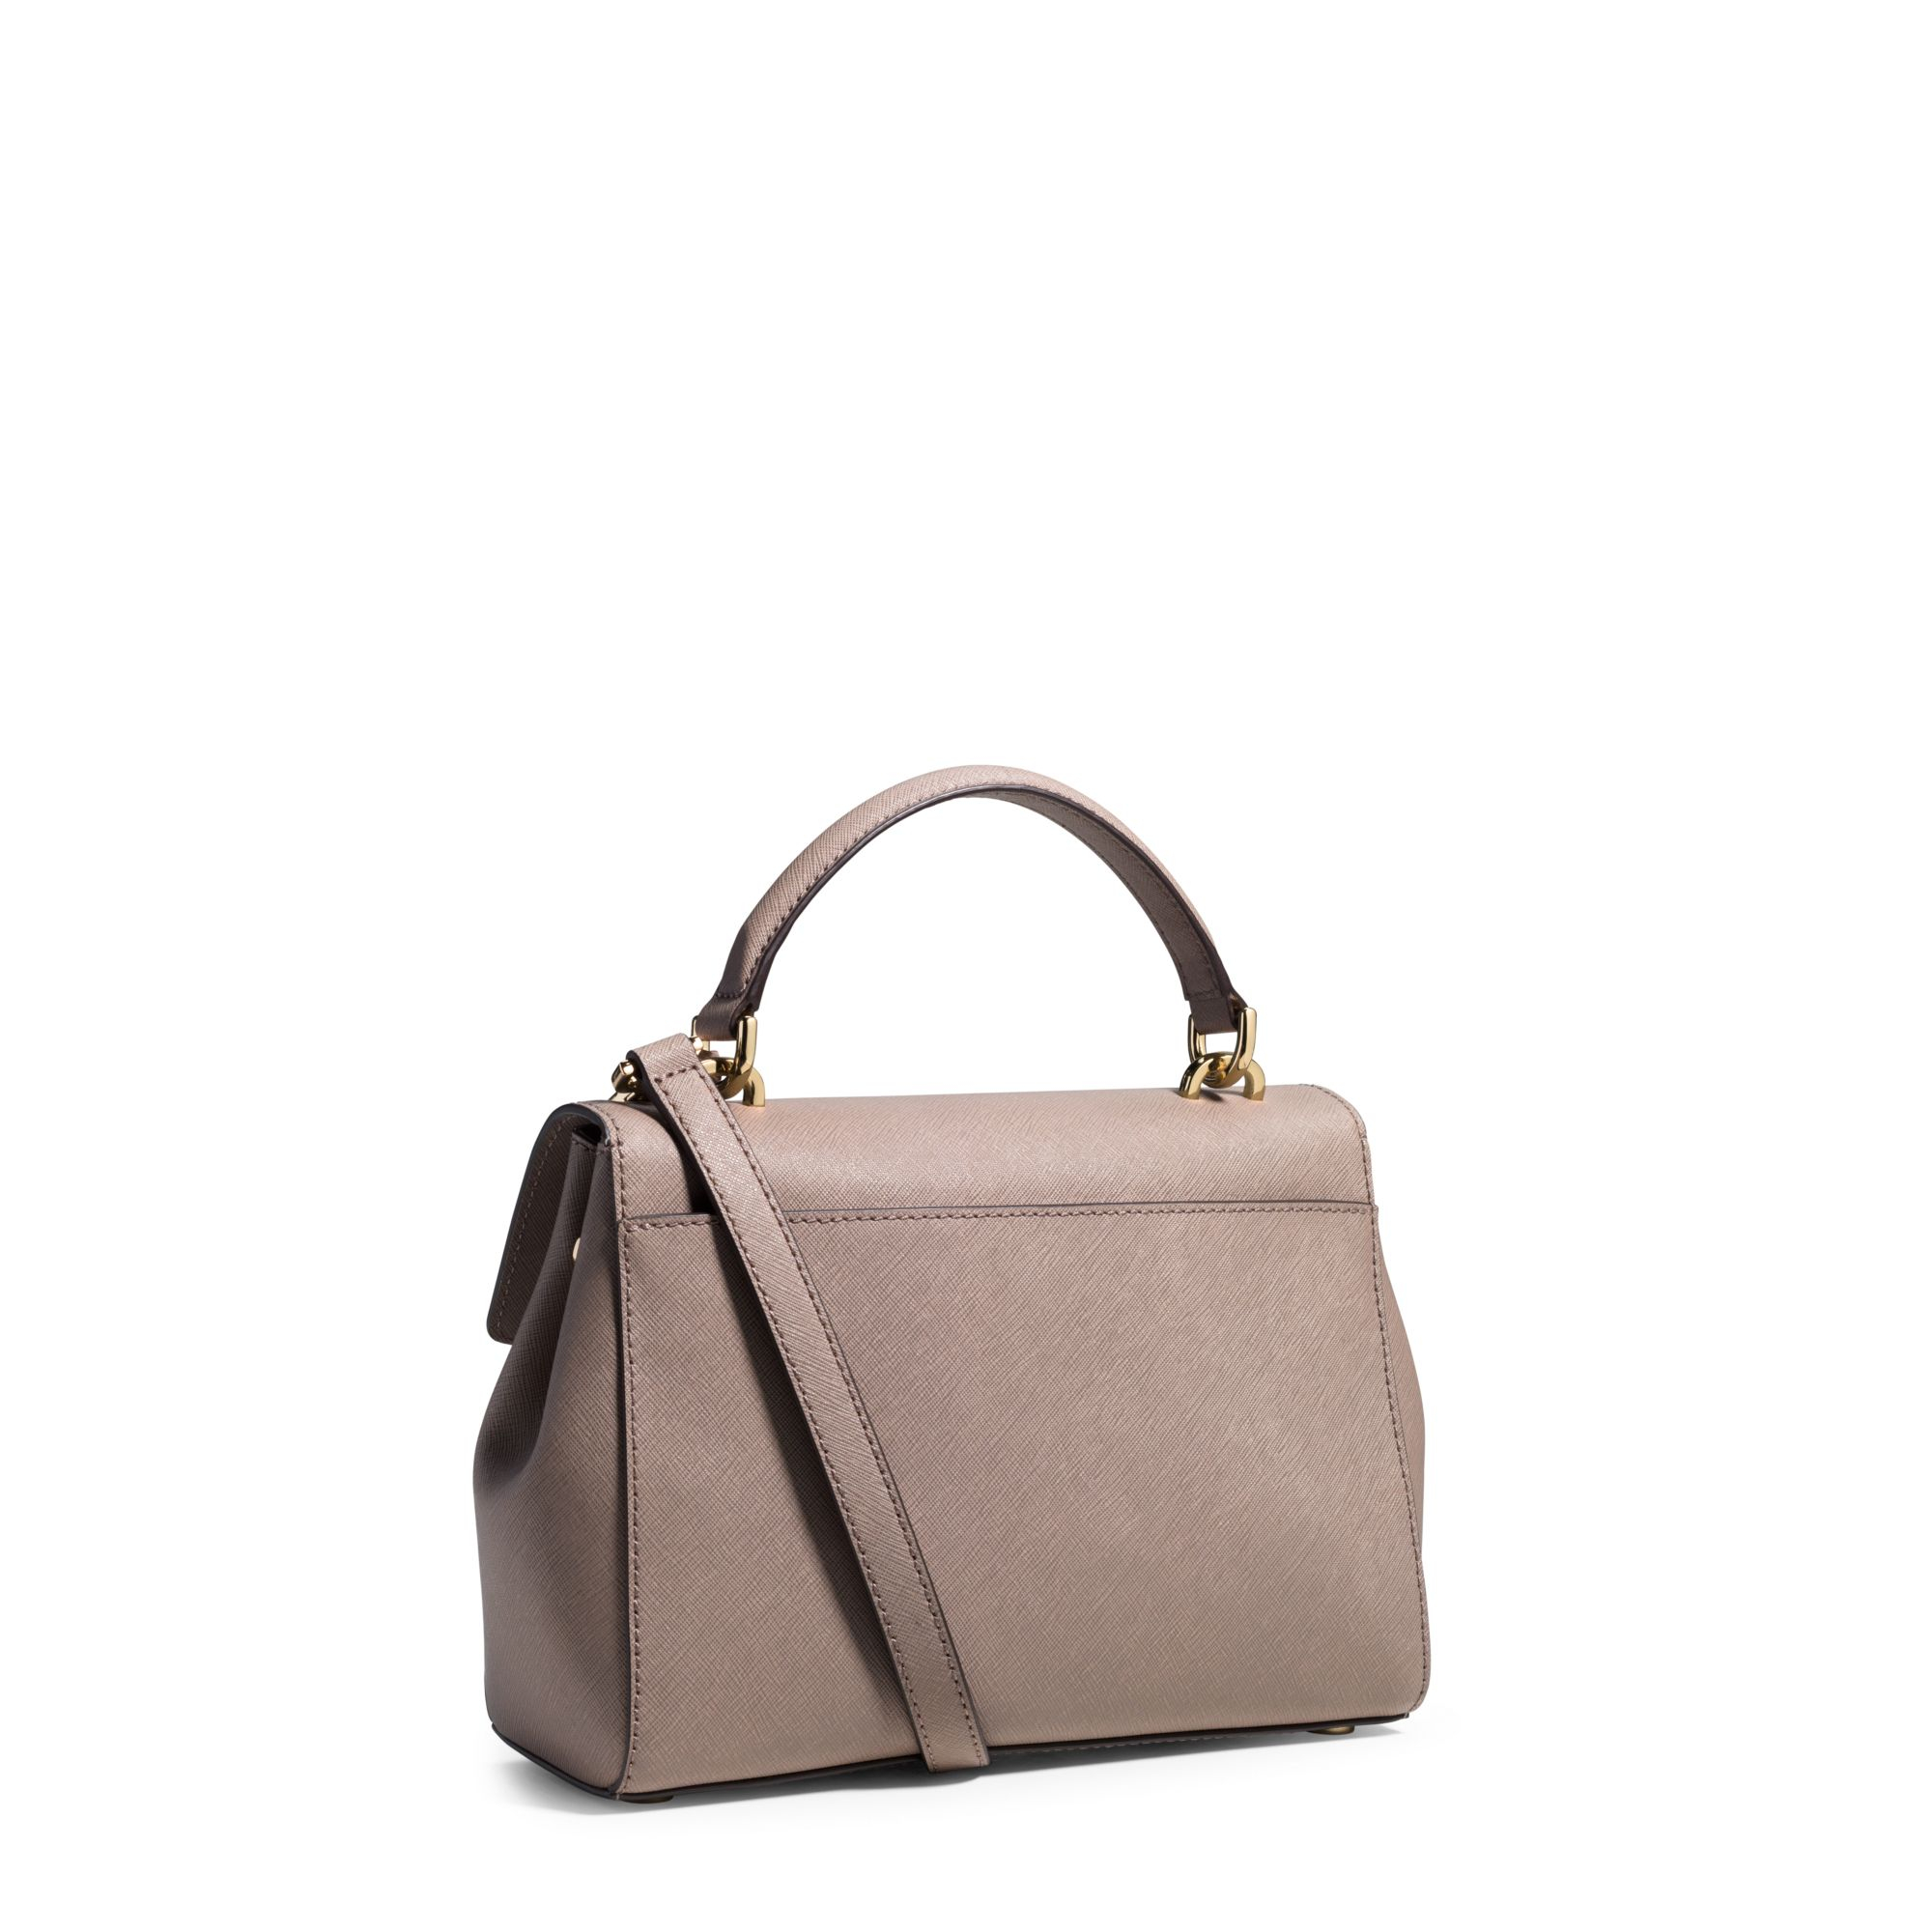 michael kors riley large satchel dune bags canada - Marwood ...